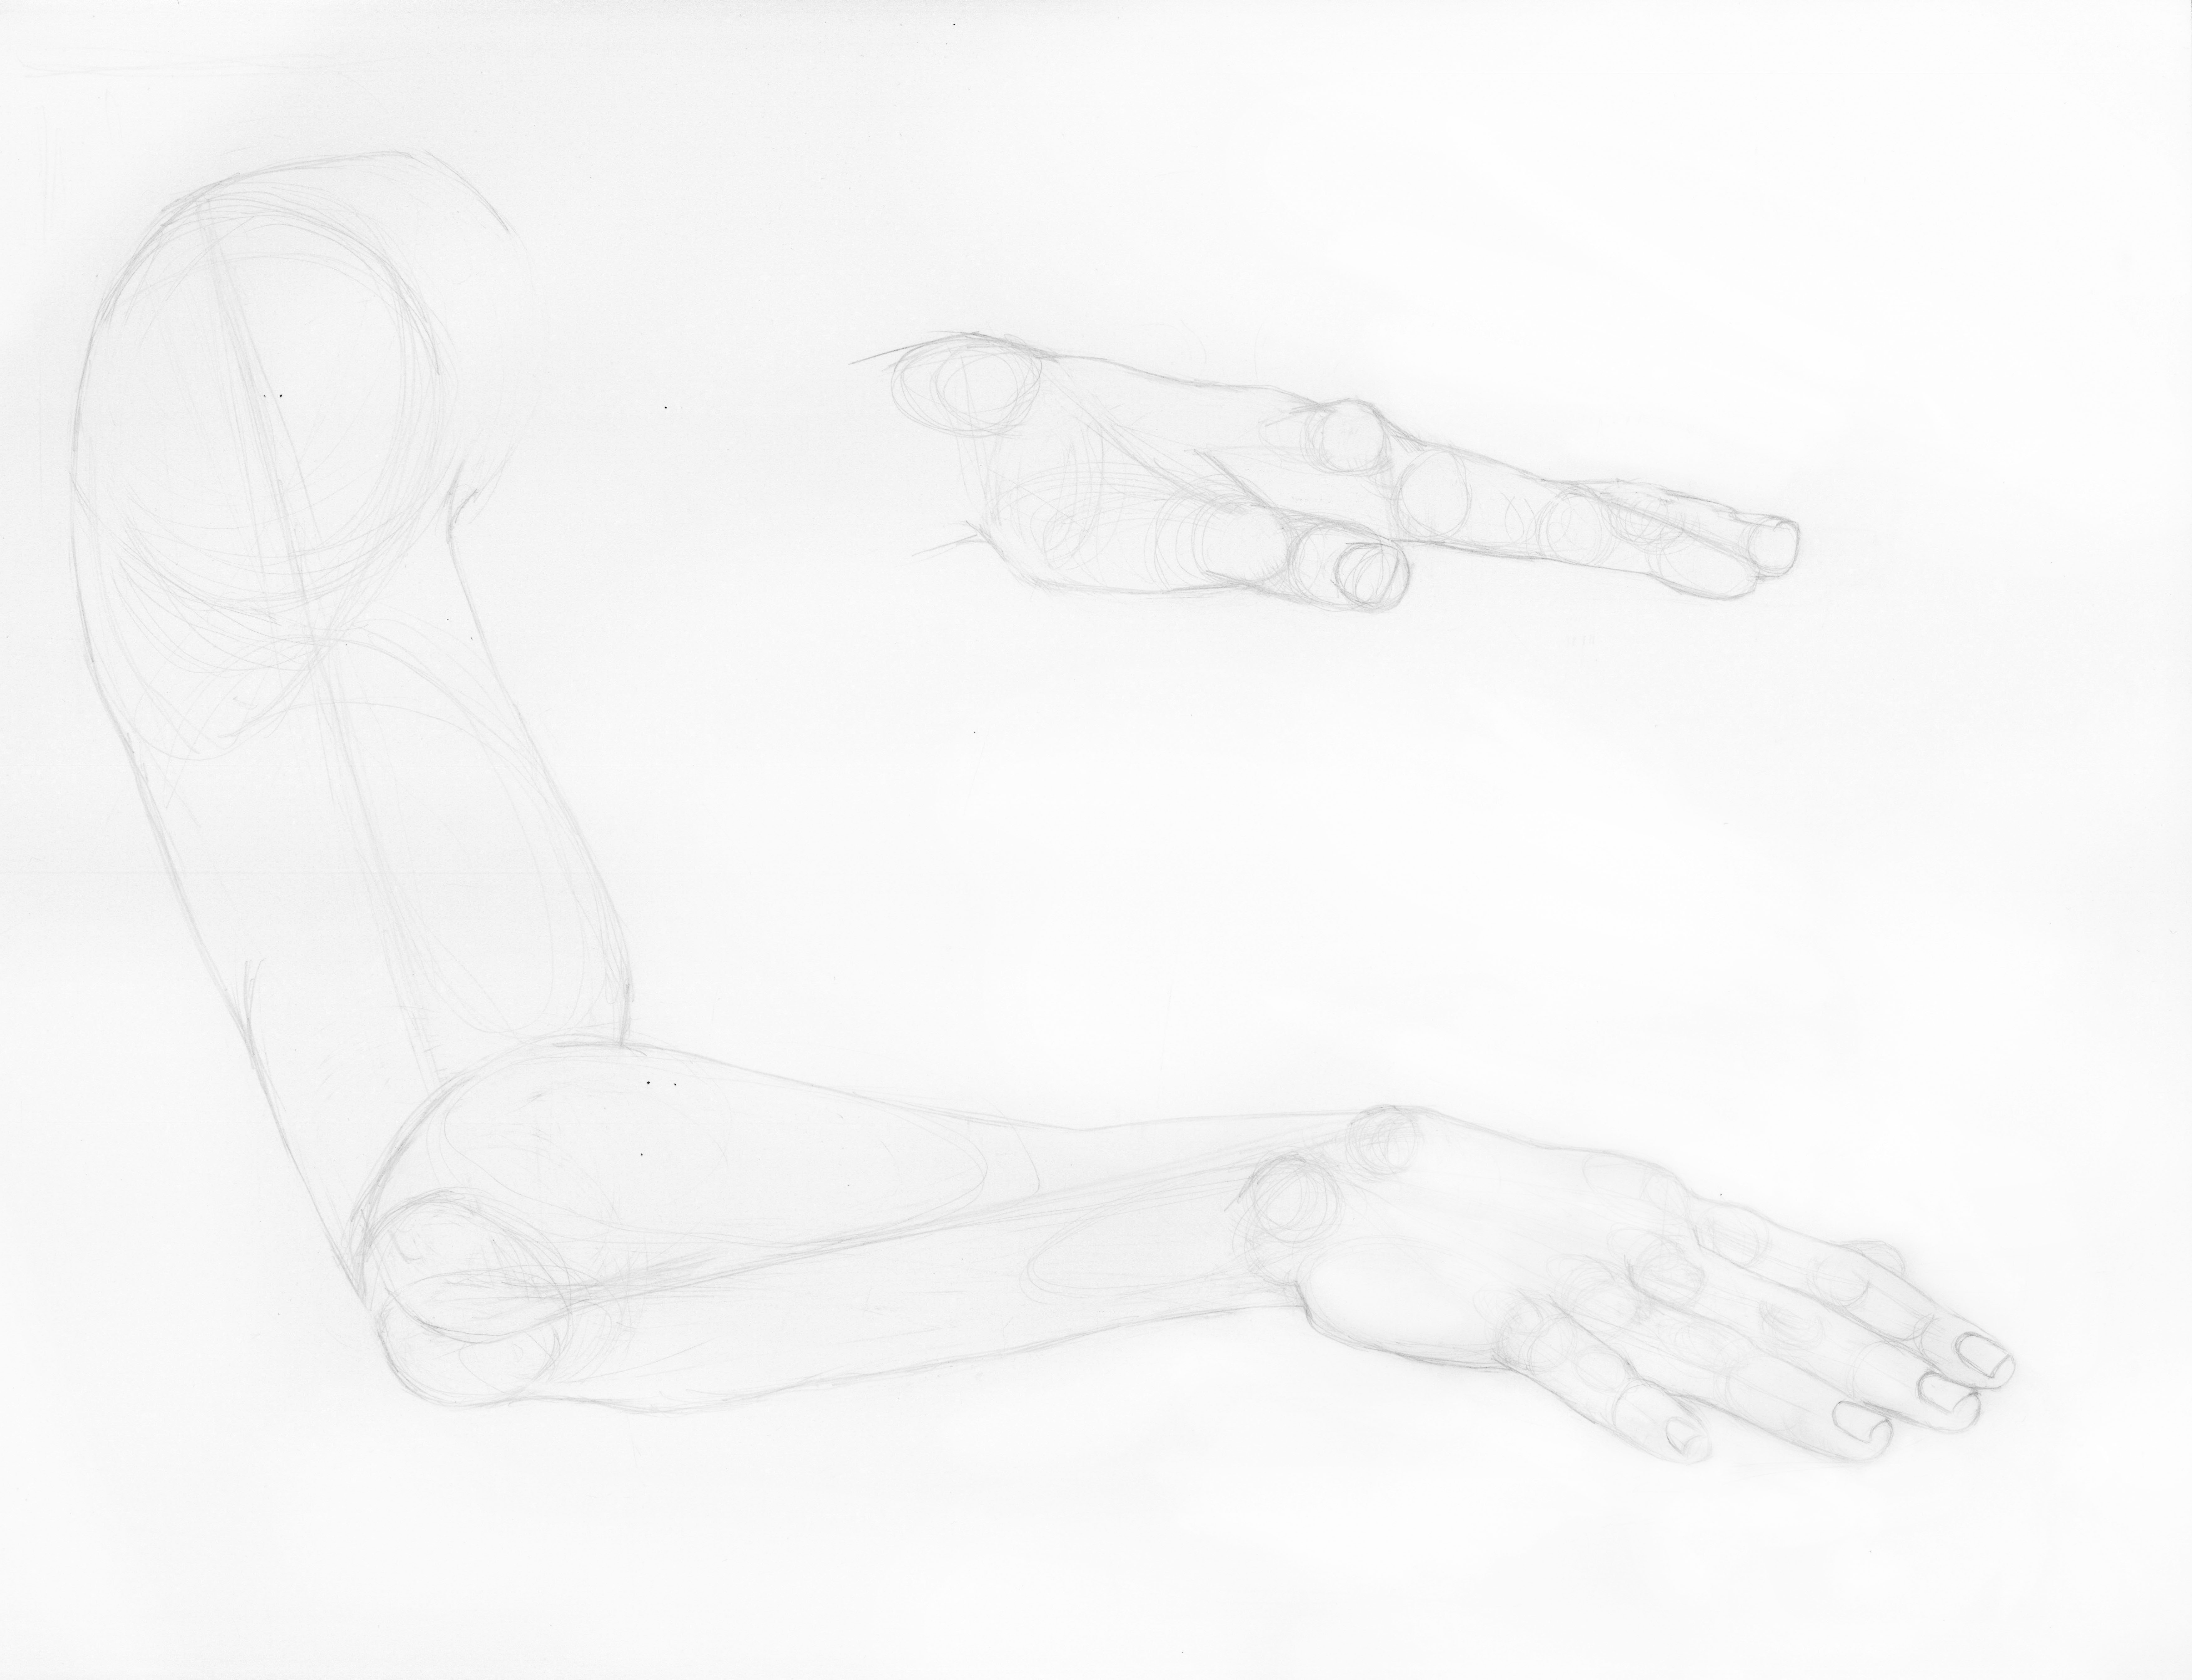 arm and hand study